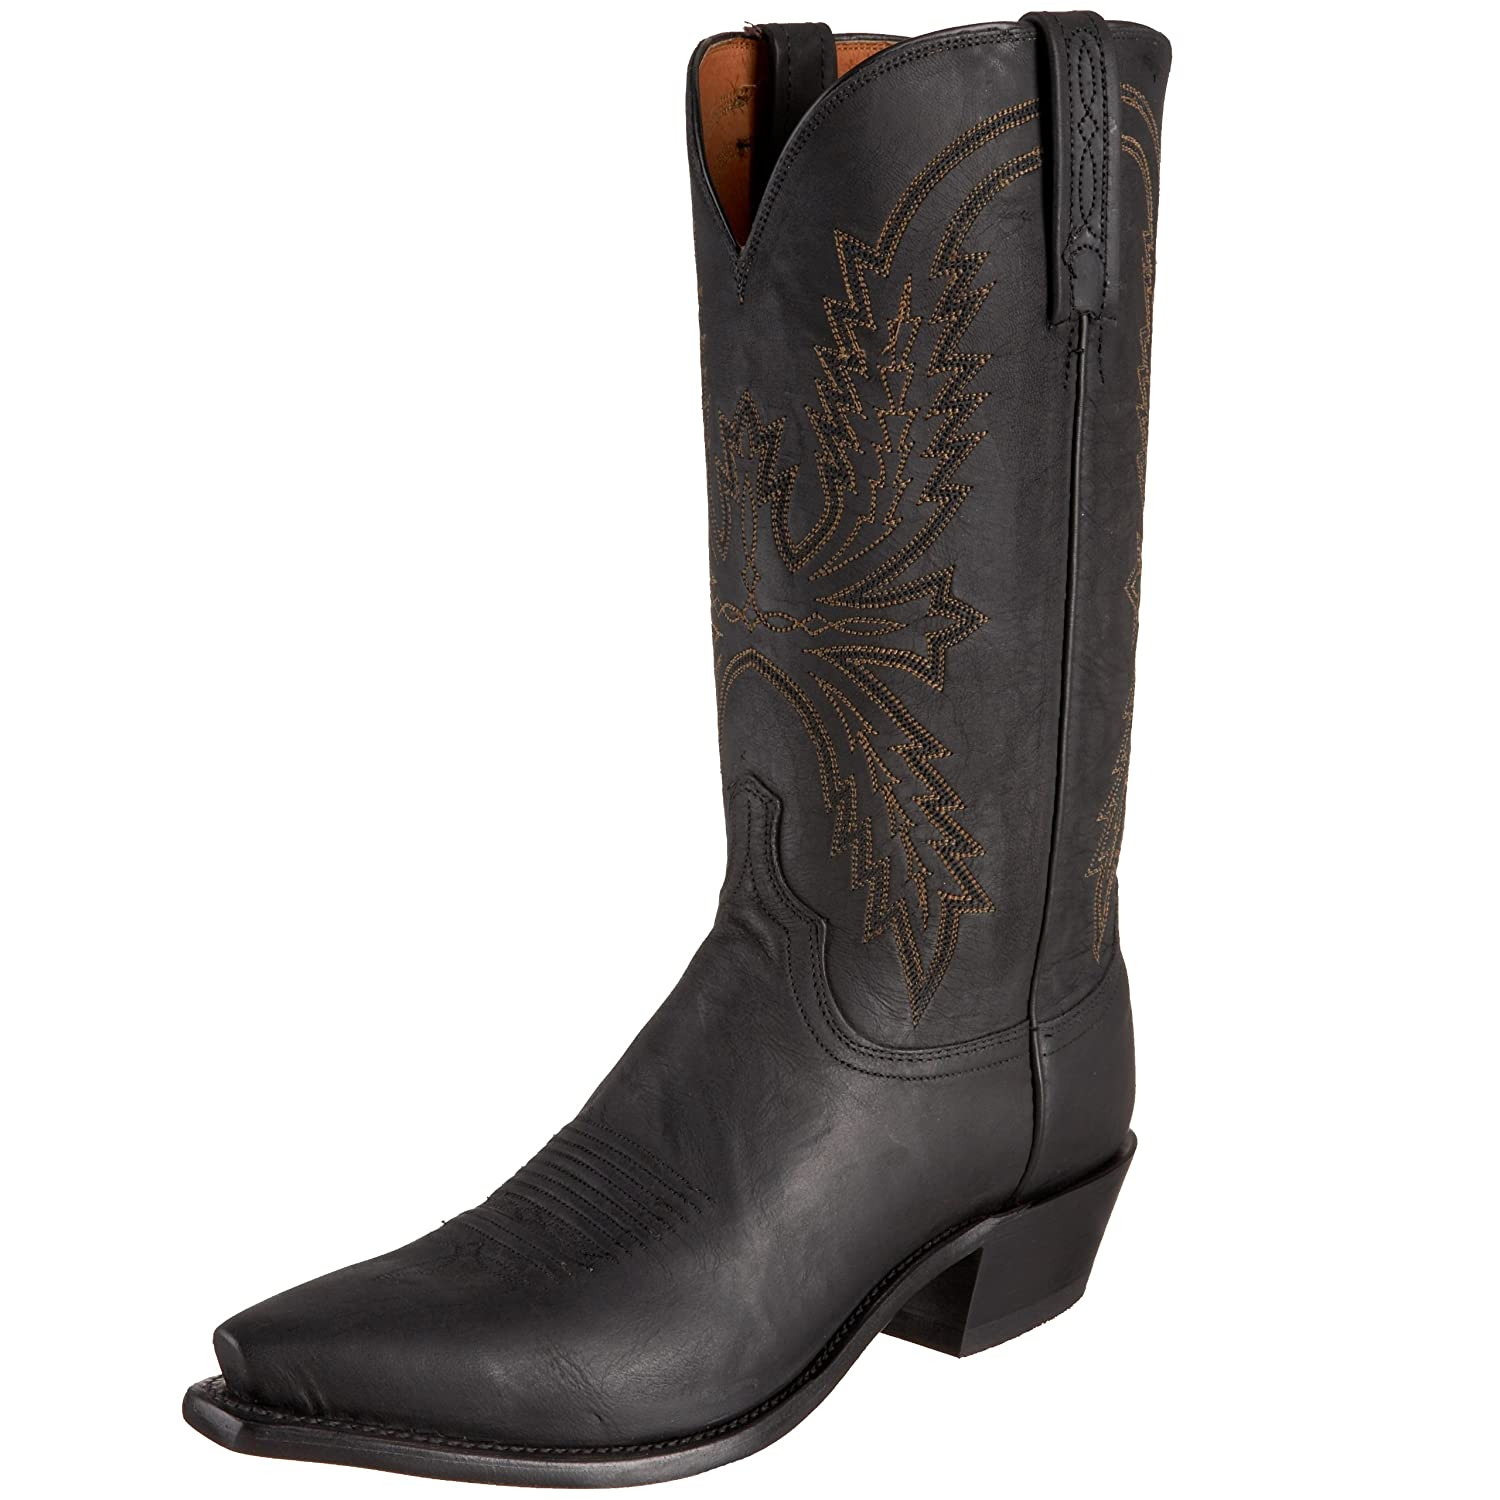 1883 by Lucchese Men's Western Boot